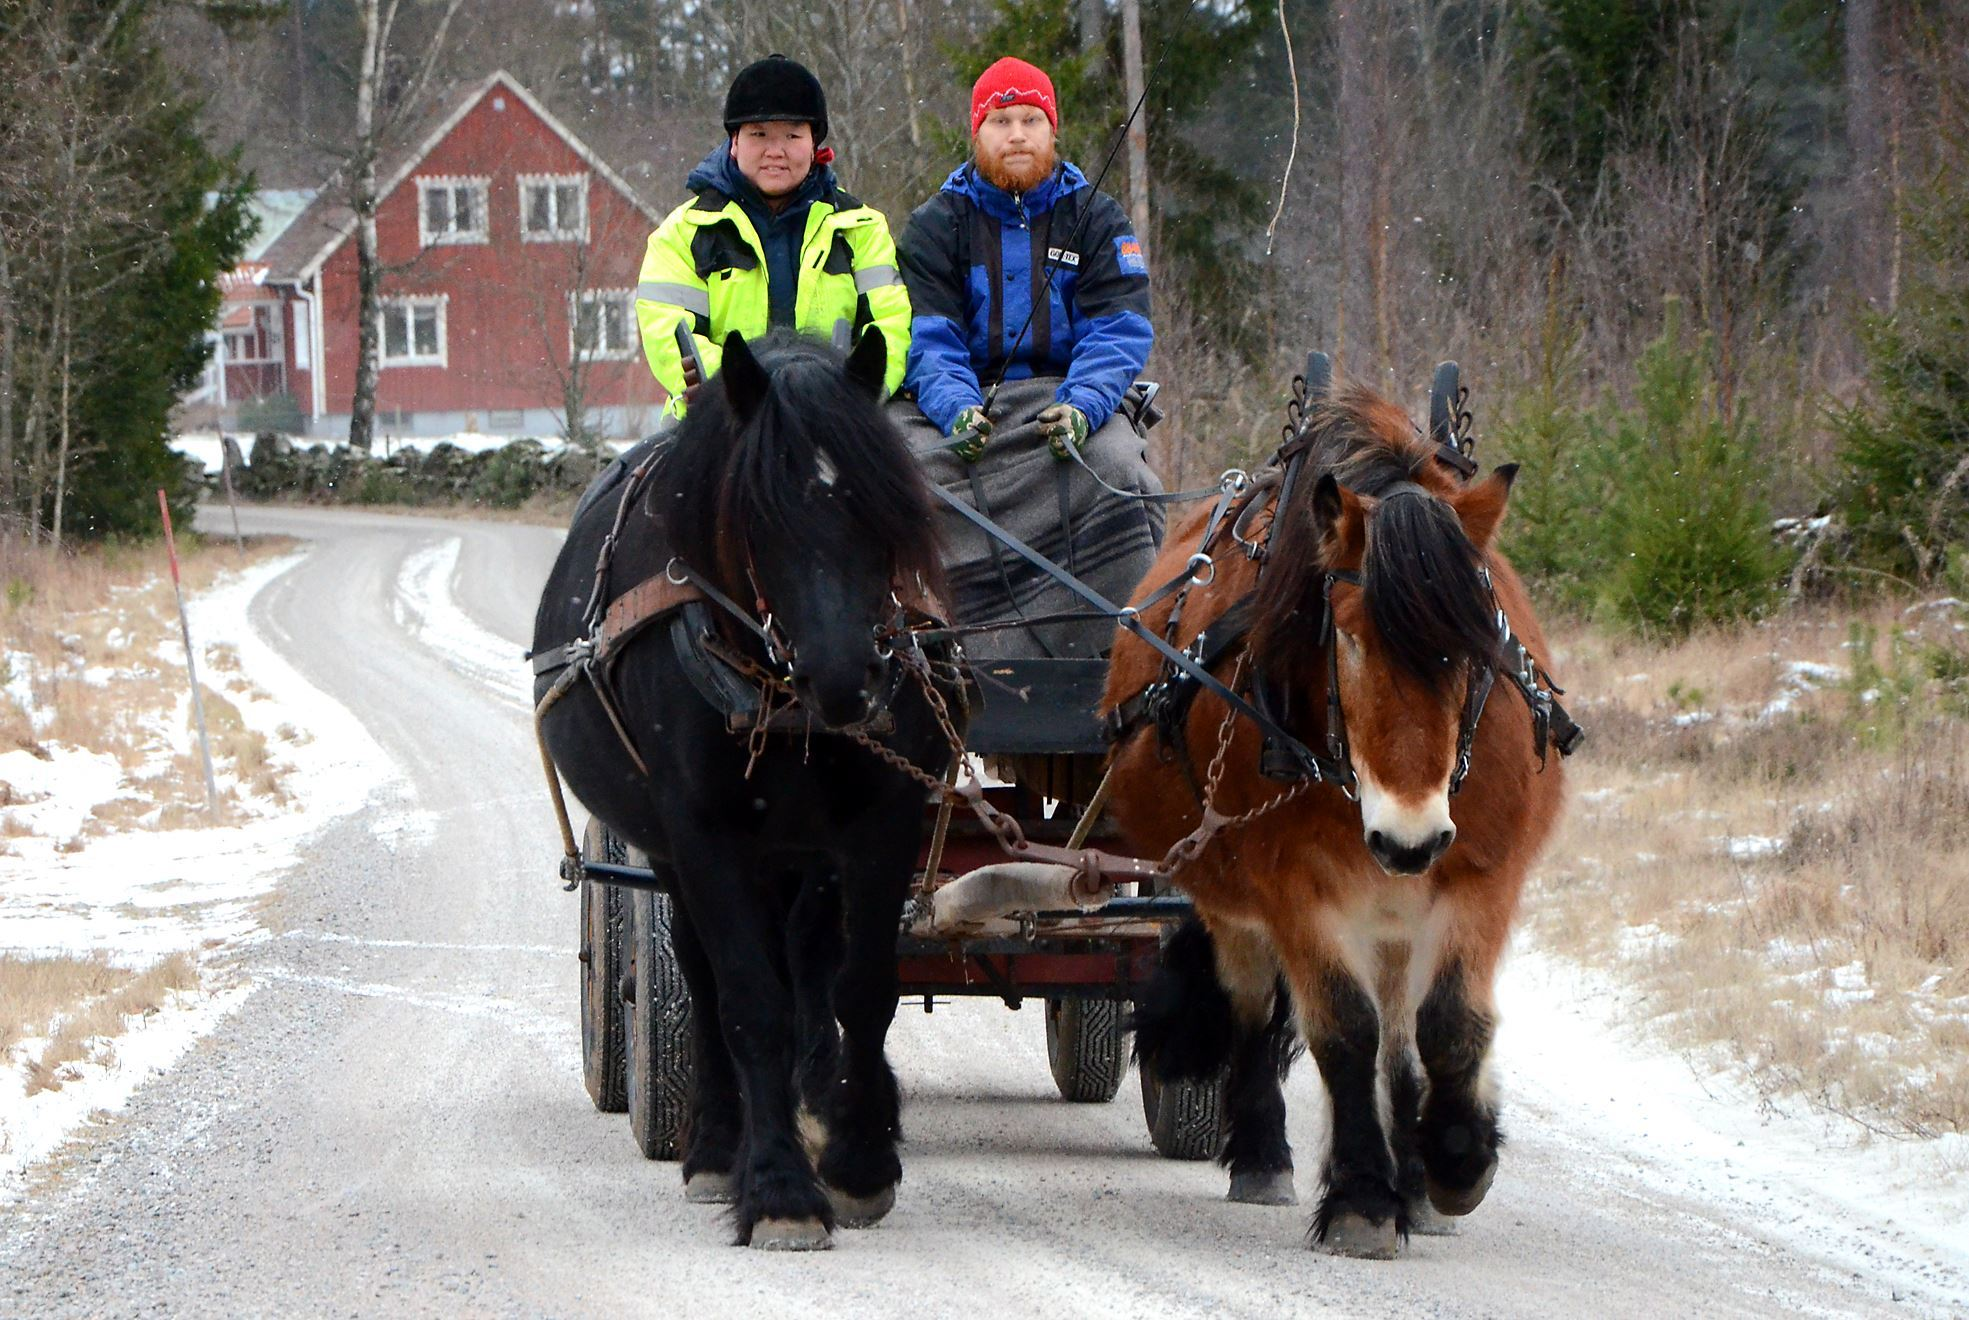 Fyrfota hästkraft - Tours with horse and carrige or sleigh